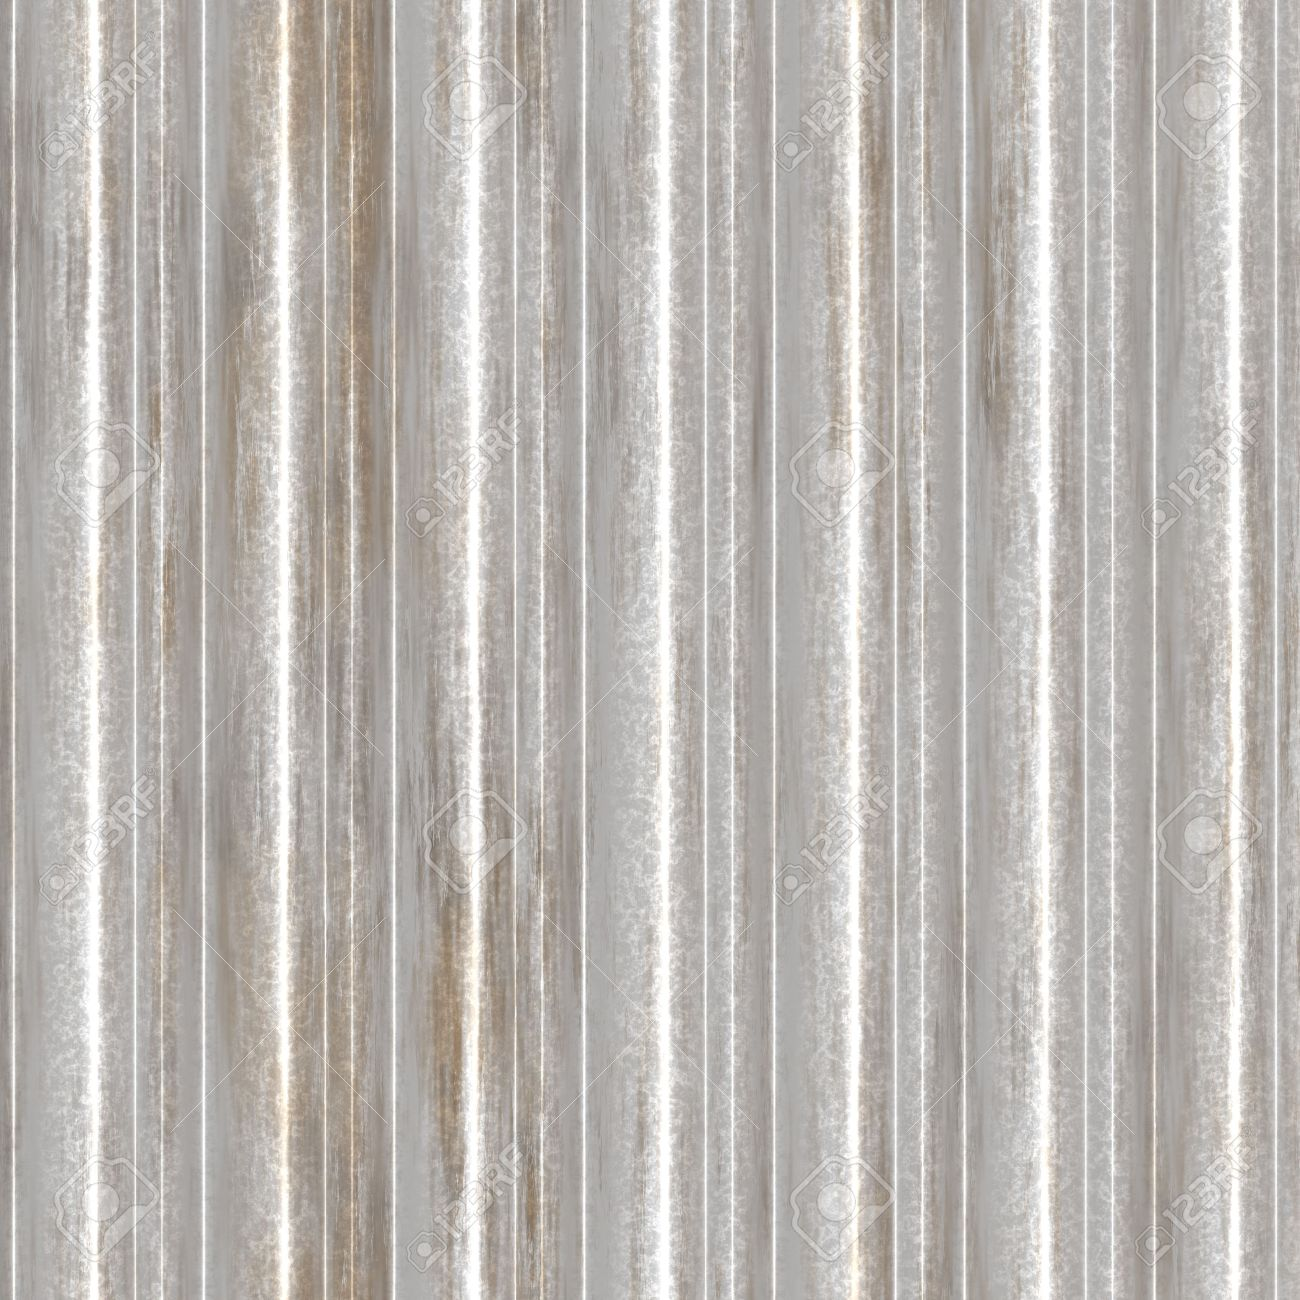 Corrugated metal ridged surface with corrosion seamless texture Stock Photo  5685941  Corrugated Metal Ridged Surface. Corrugated Metal Seamless Texture